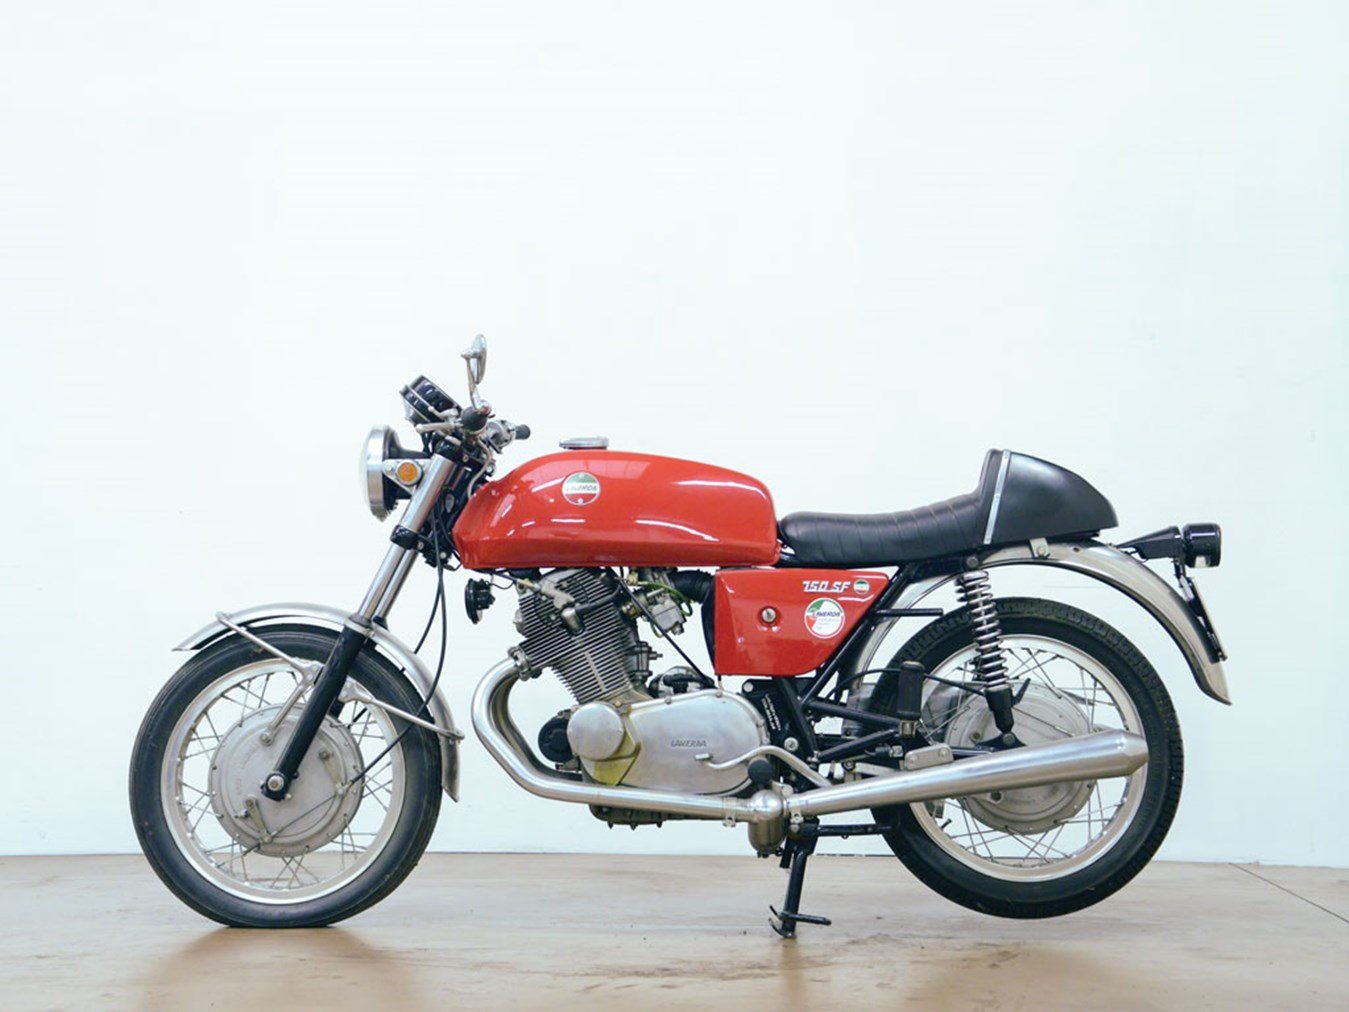 Laverda 750sf photo - 9